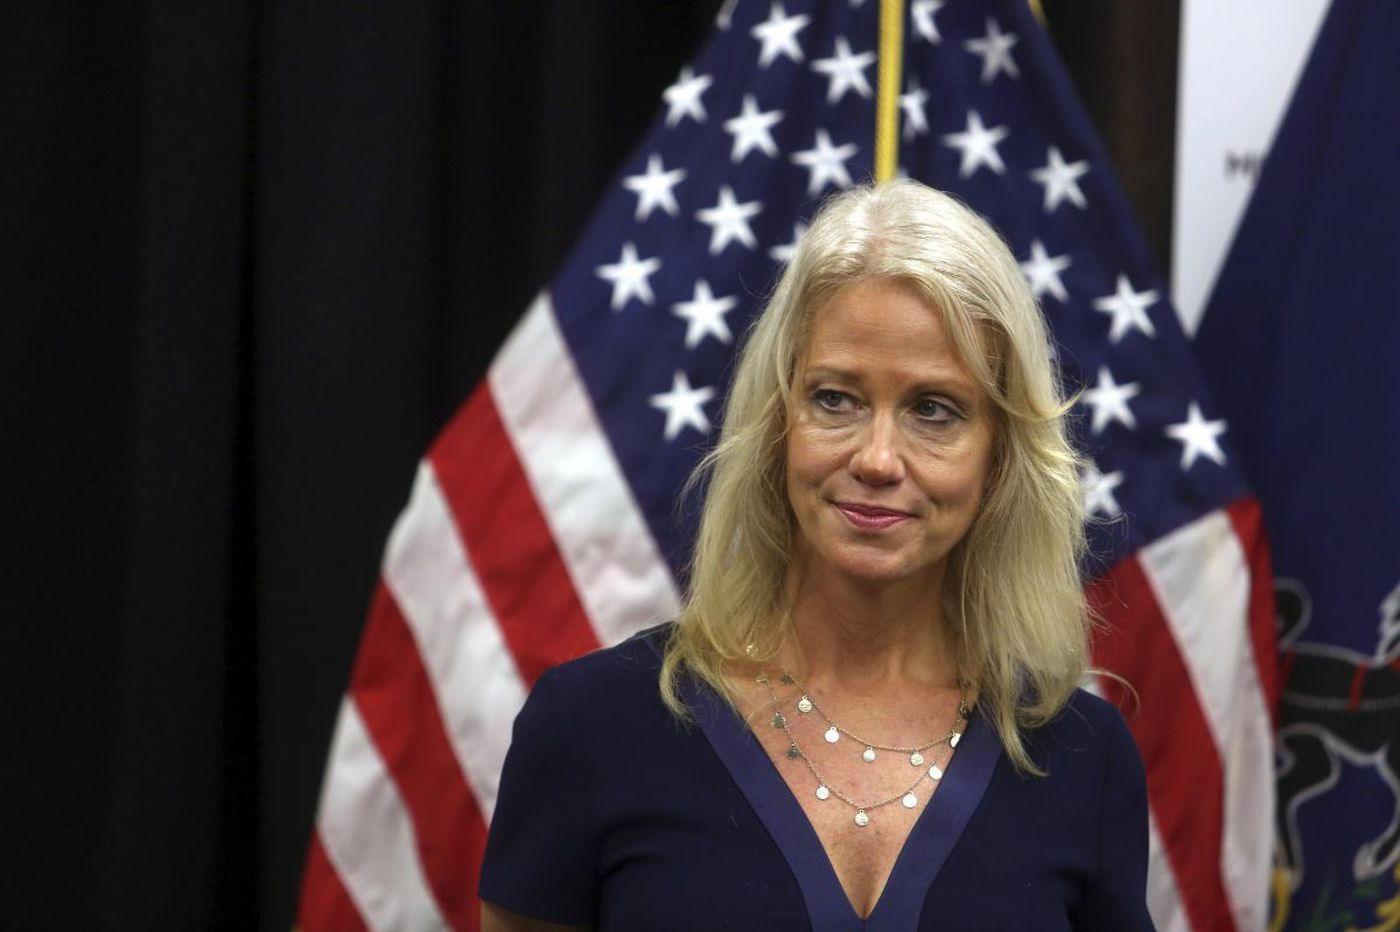 Kellyanne Conway will now lead the fight against opioids - God help us all | Mike Newall